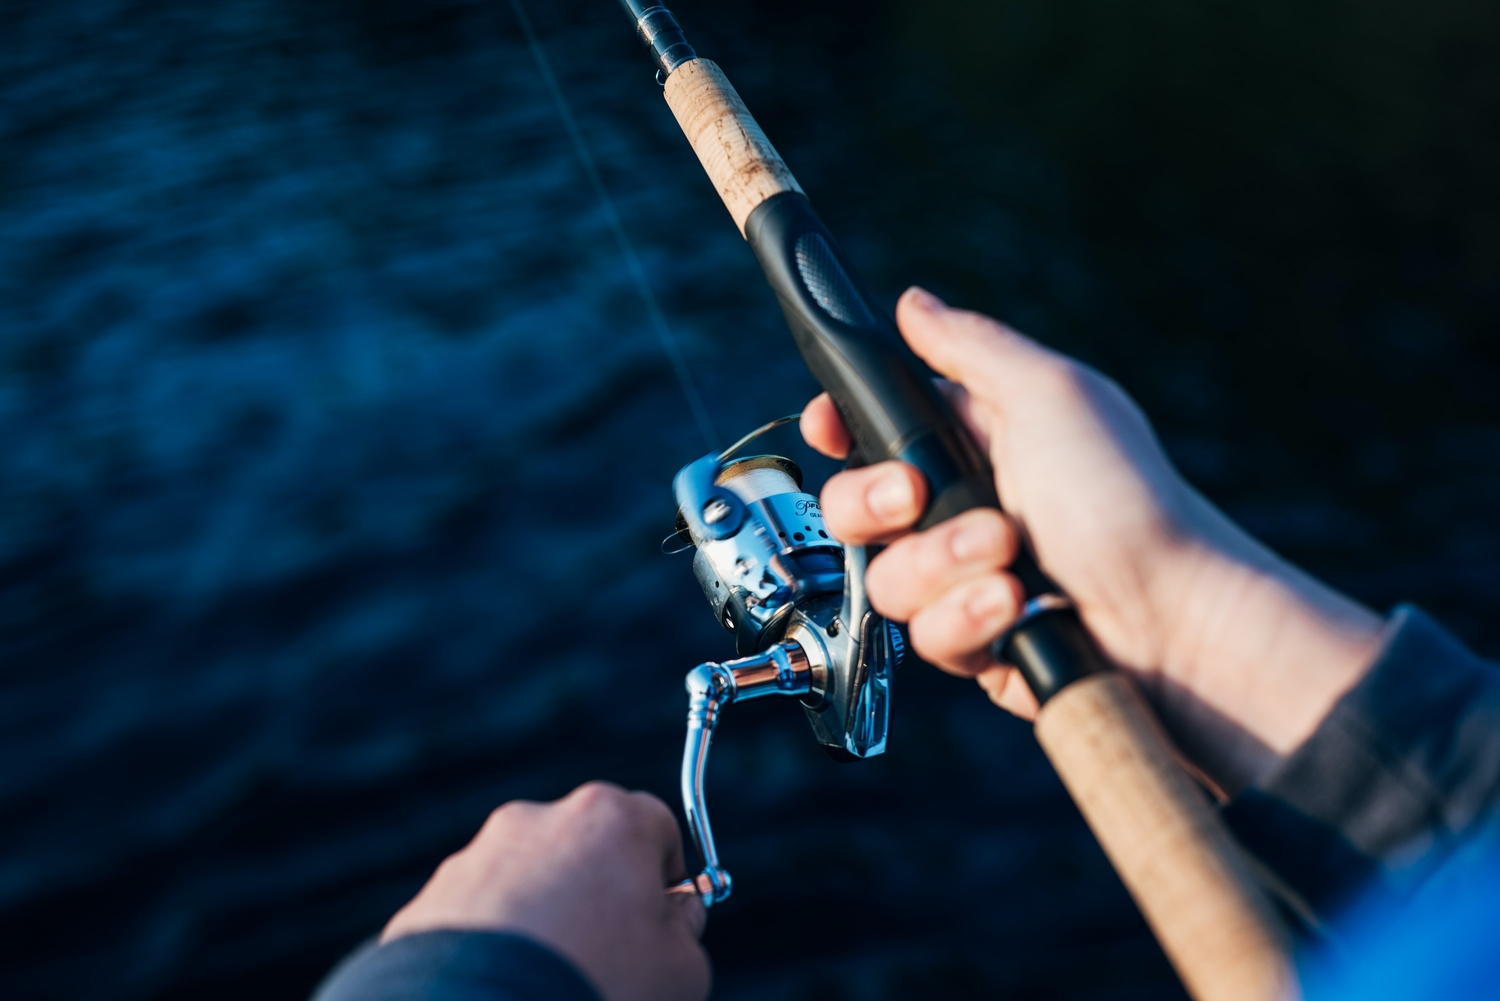 rsz photo of person holding fishing rod 2473502